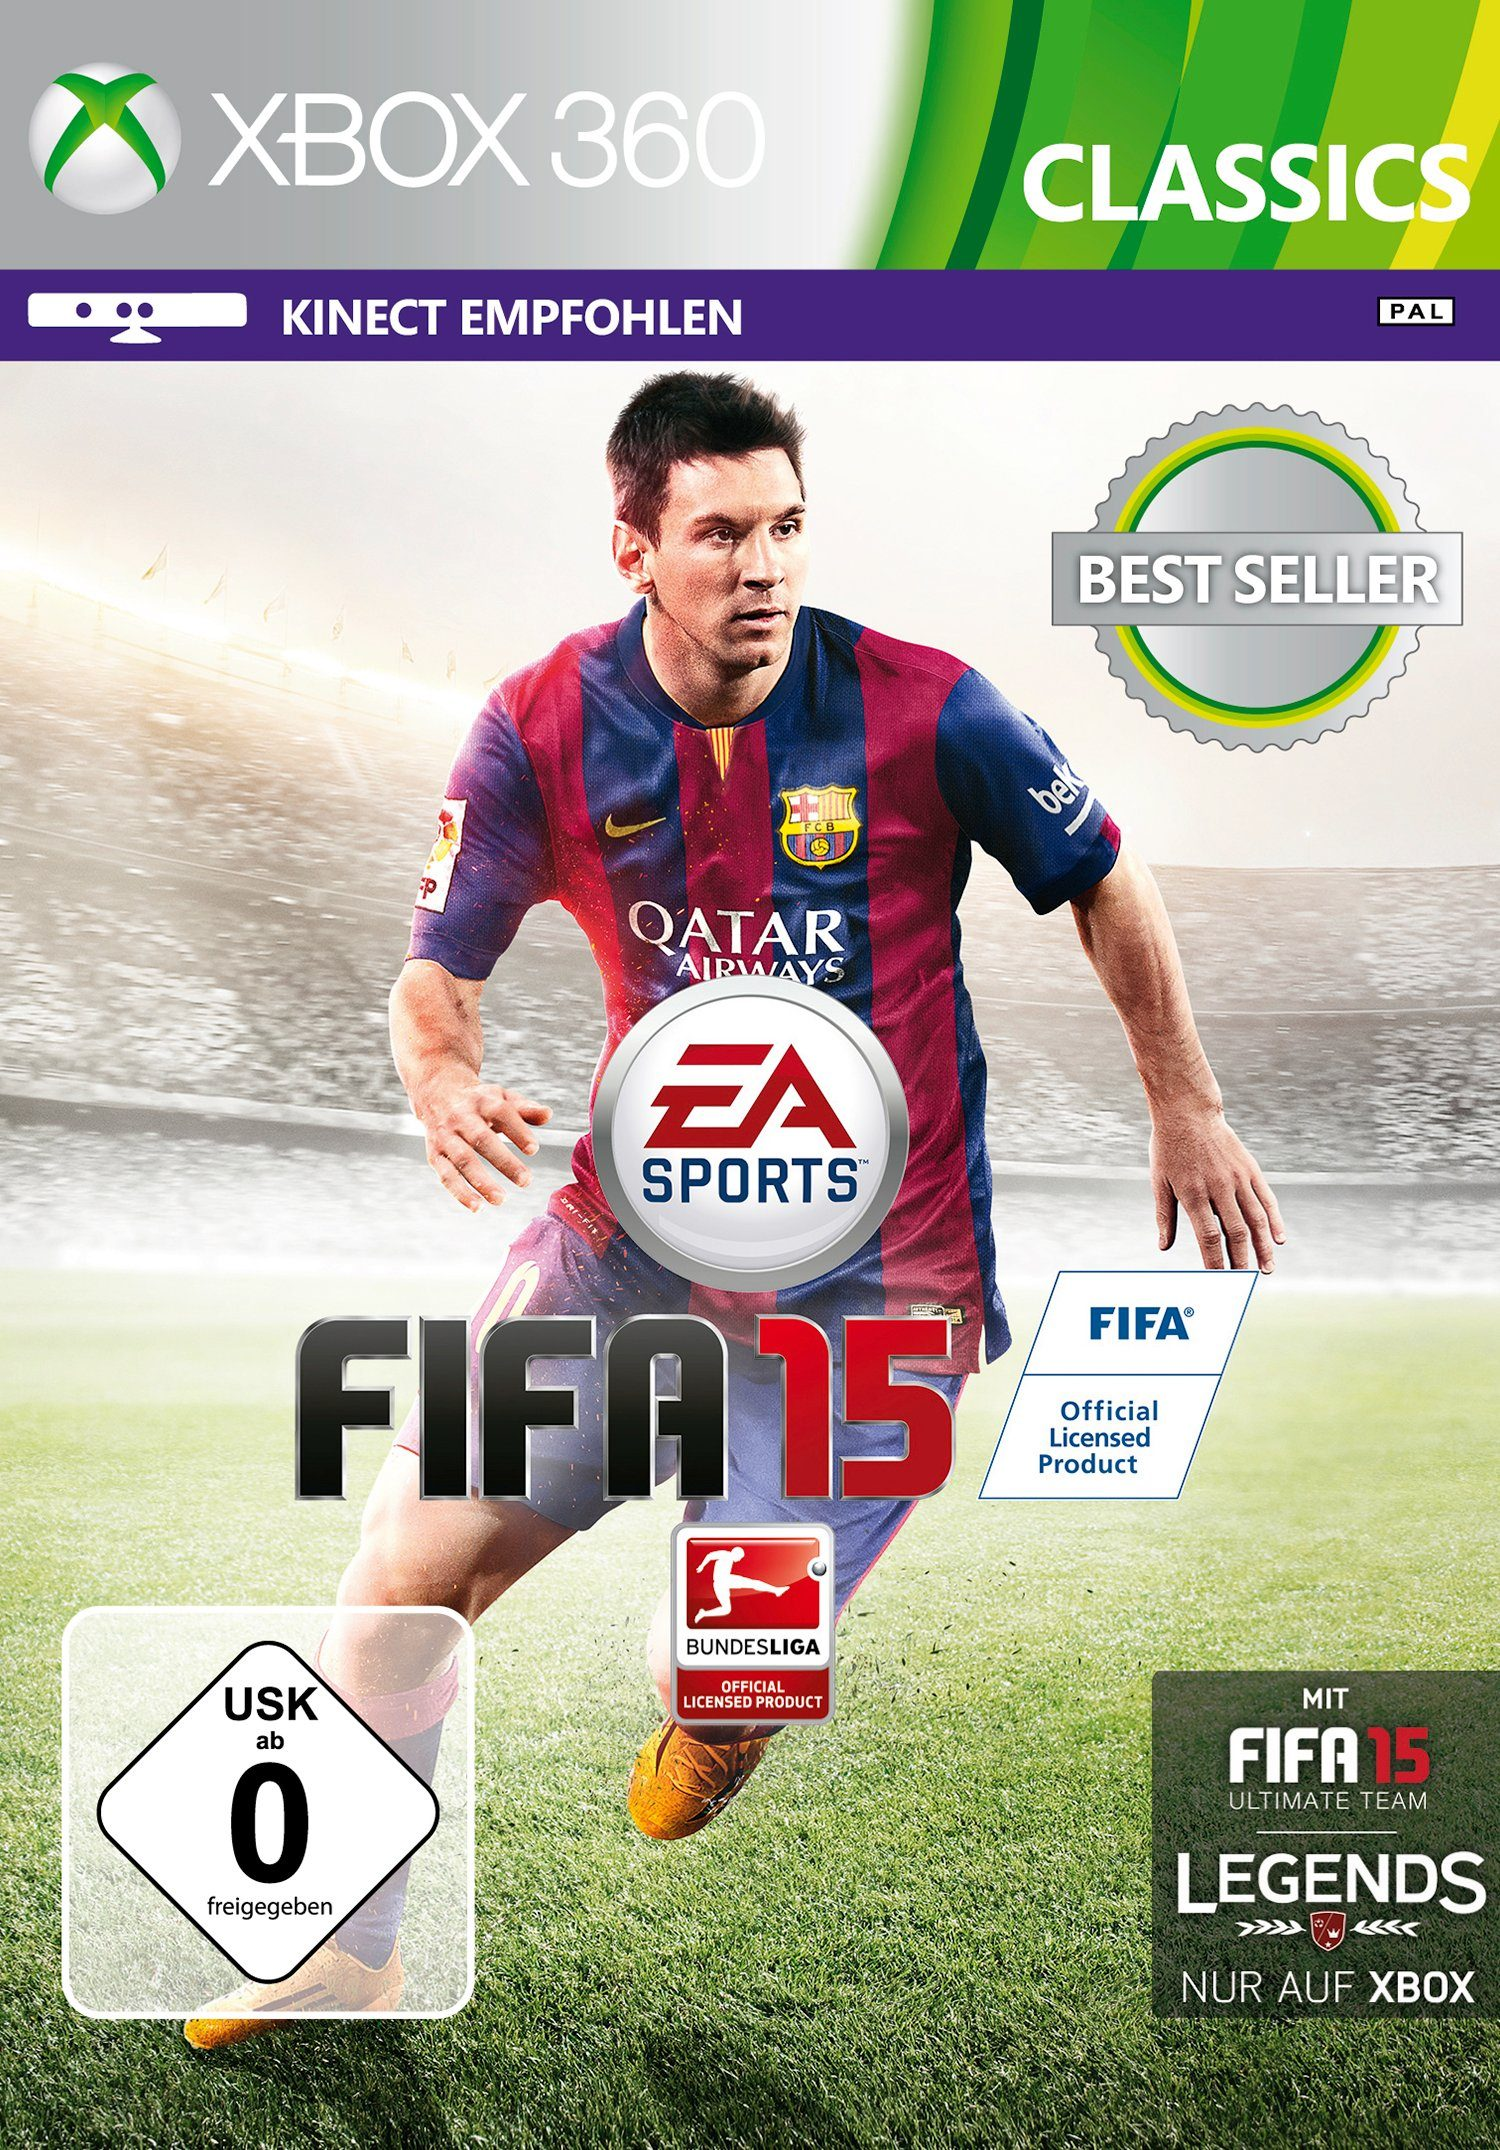 Electronic Arts Software Pyramide - Xbox 360 Spiel »Fifa 15«